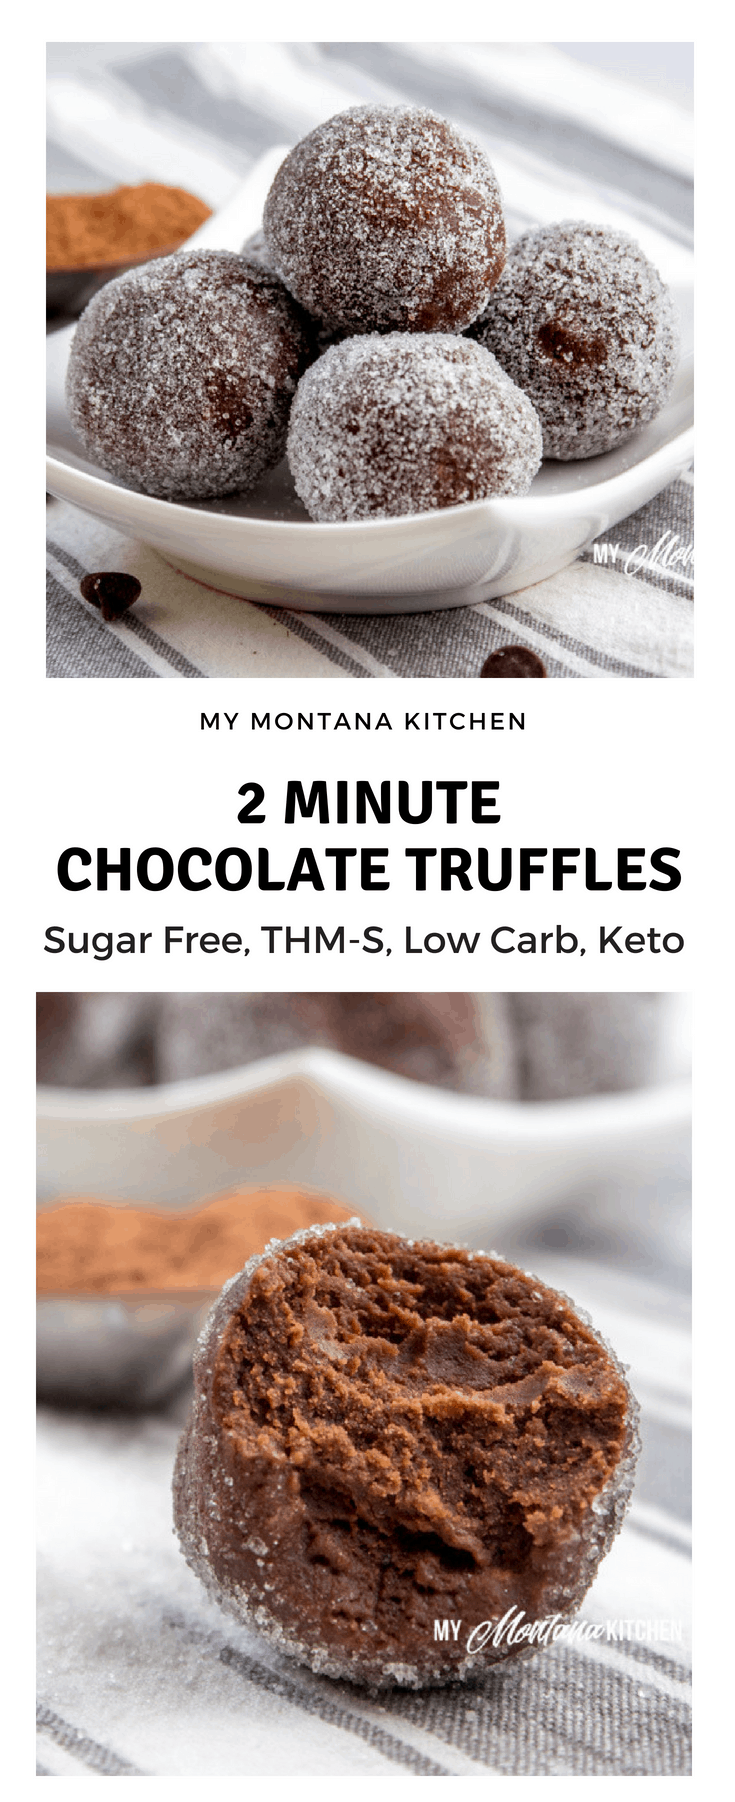 If you need a quick sweet treat, try this 2 Minute Chocolate Truffles Recipe. Seriously, you can have a decadent, velvety, rich truffle in less than 2 minutes - and with NO guilt! #trimhealthymama #thm #thm-s #2minutetruffles #thmtruffles #sugarfree #keto #lowcarb #dairyfree #glutenfree #chocolate